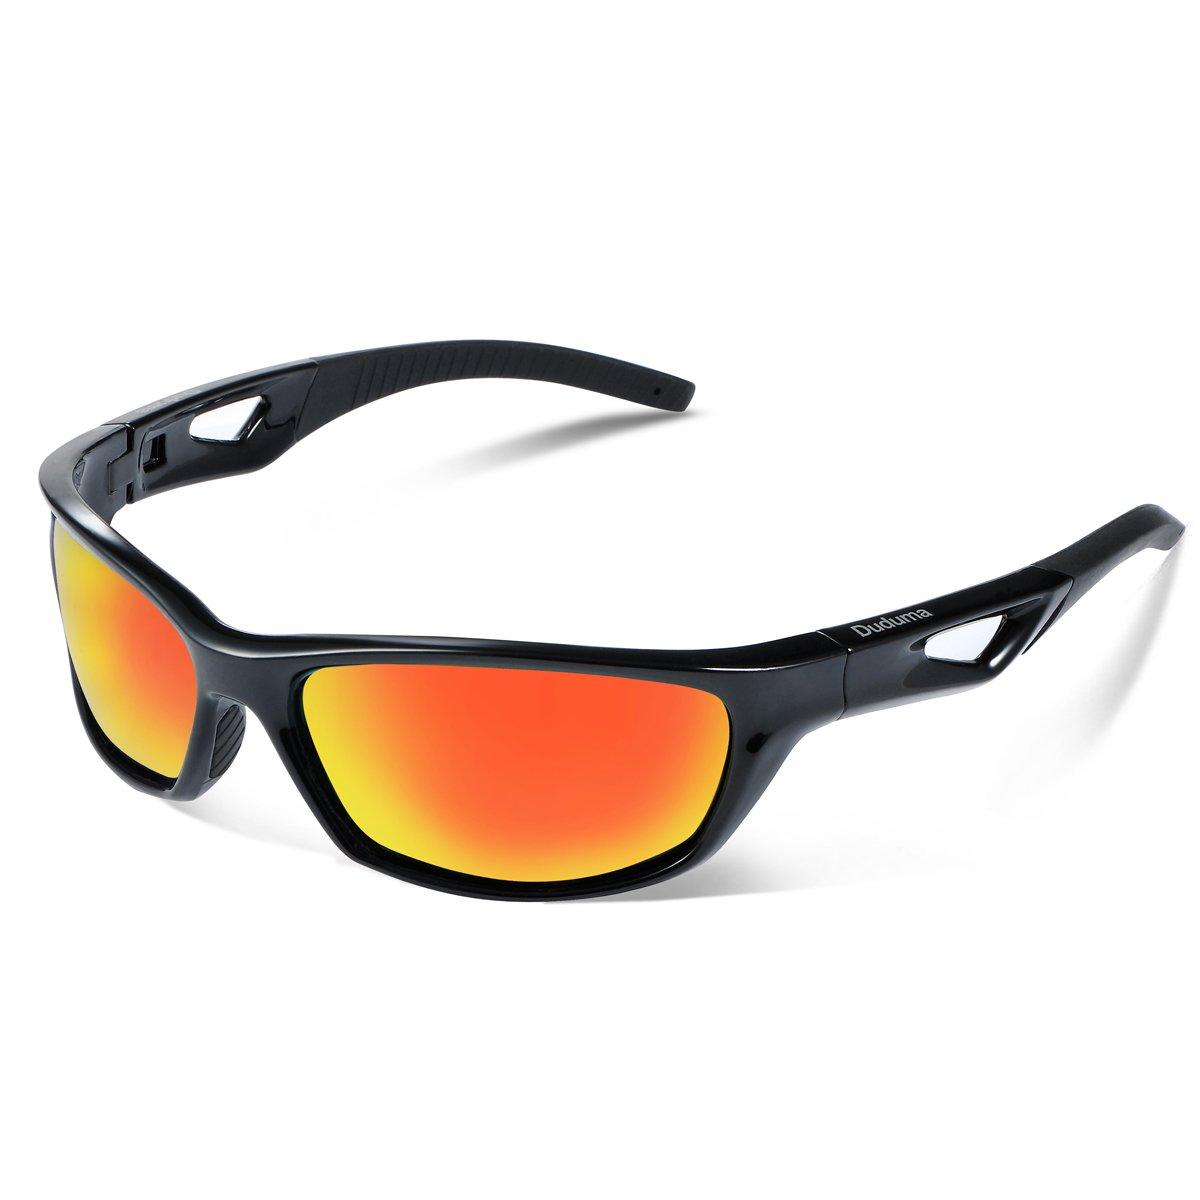 9e2d1a839b0 Duduma Polarised Sport Mens Sunglasses for Fishing Driving Ski Golf Running  Cycling with Fashion Design Full